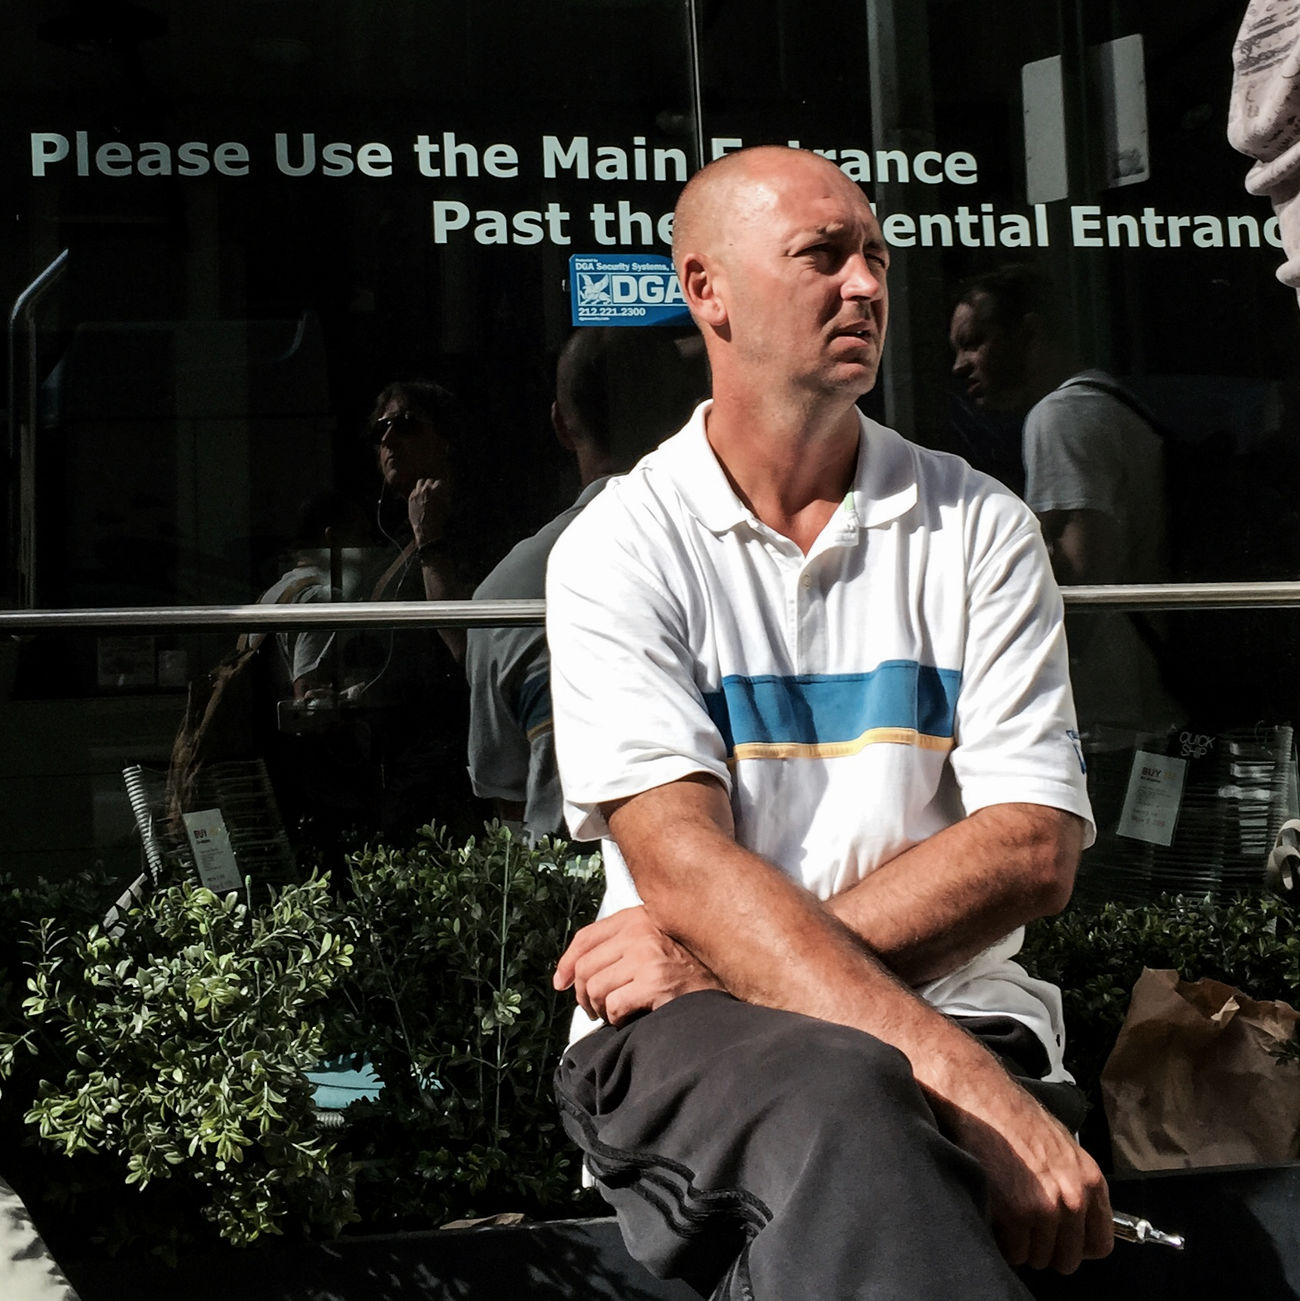 #Friday #man #working #summer2015 #chelsea #Manhattan #NYC #streetphotography #people #sunlight #breakfast #shadows @erinlhubbsphoto